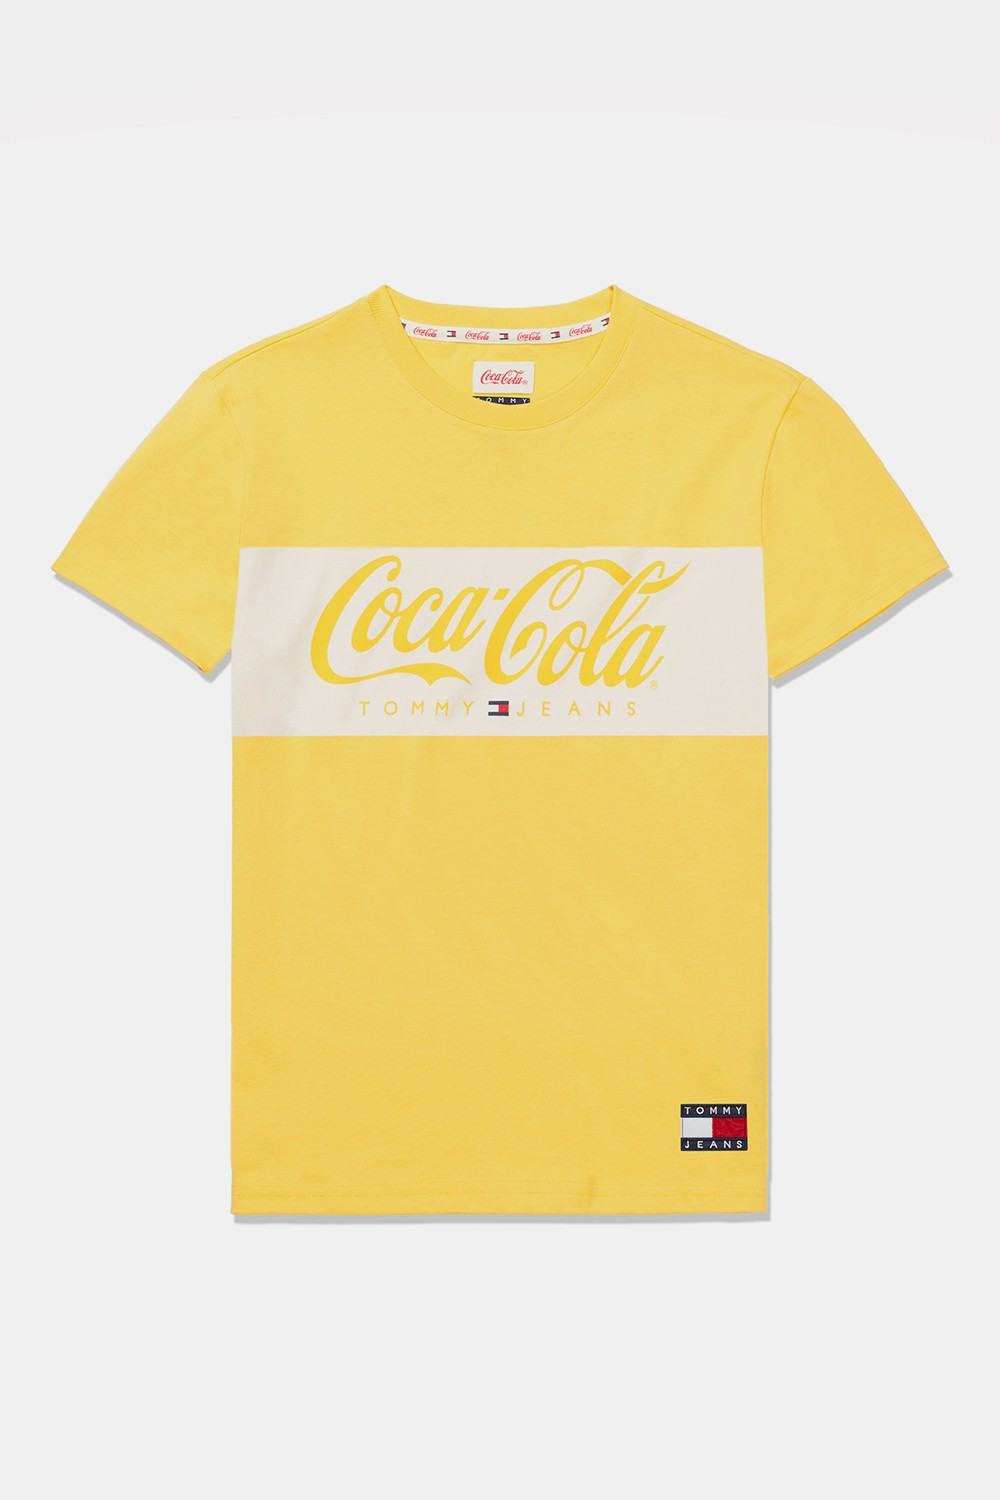 51144381 Shop the Tommy Jeans x Coca-Cola SS19 capsule collection right now online.  Check out the lookbook and product shots below: